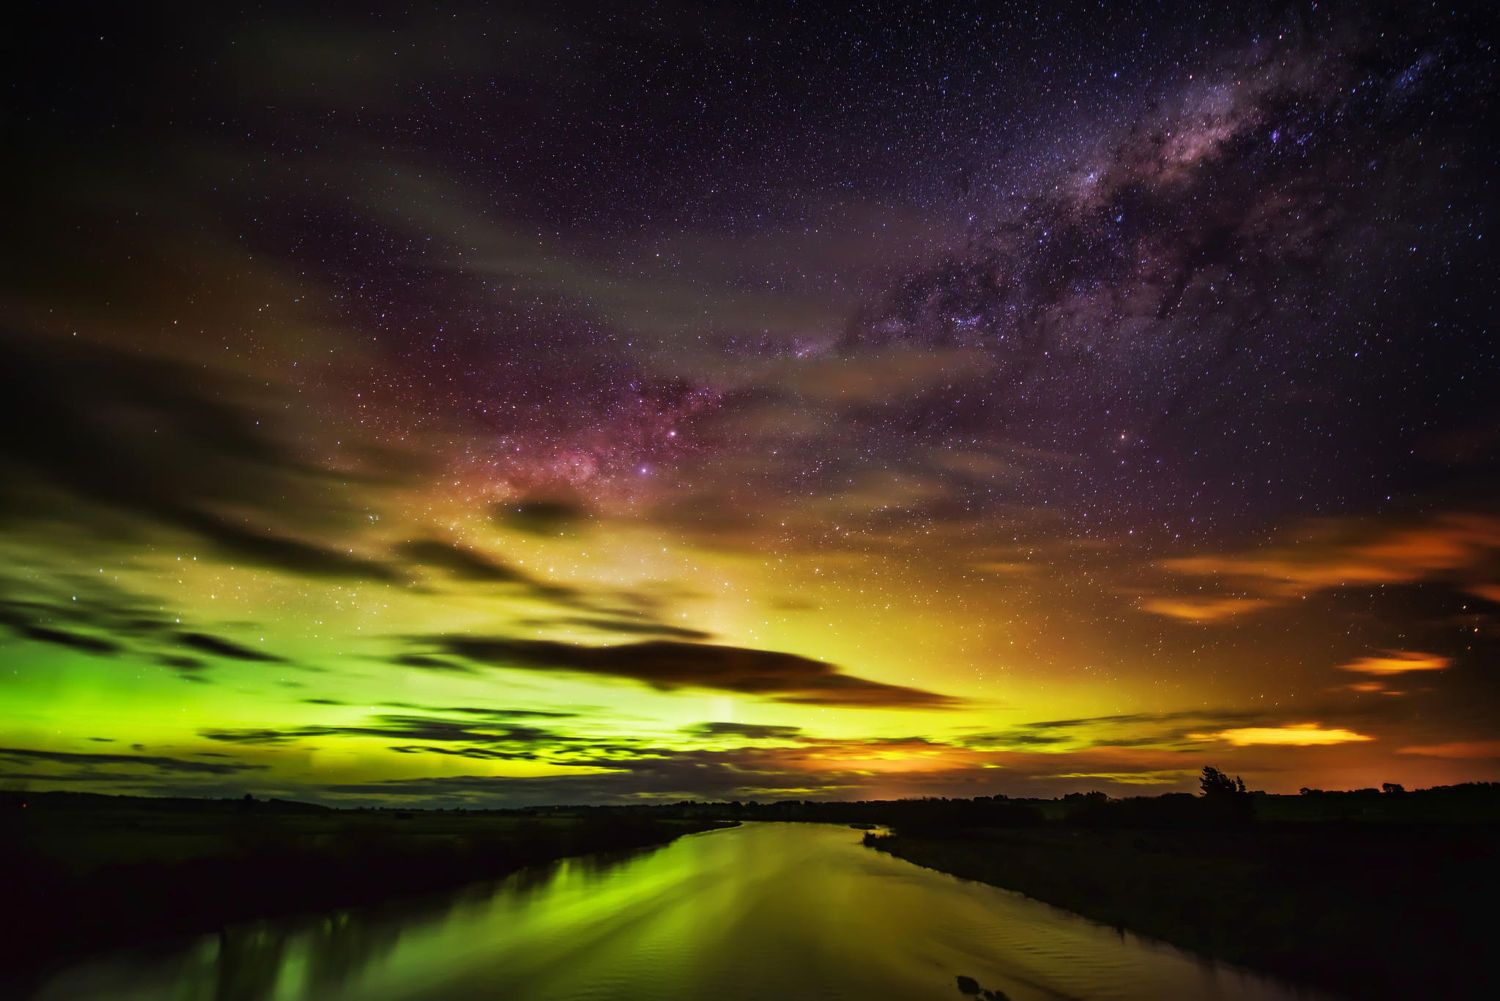 The Aurora Australis over Southern New Zealand by Trey Ratcliff on 500px